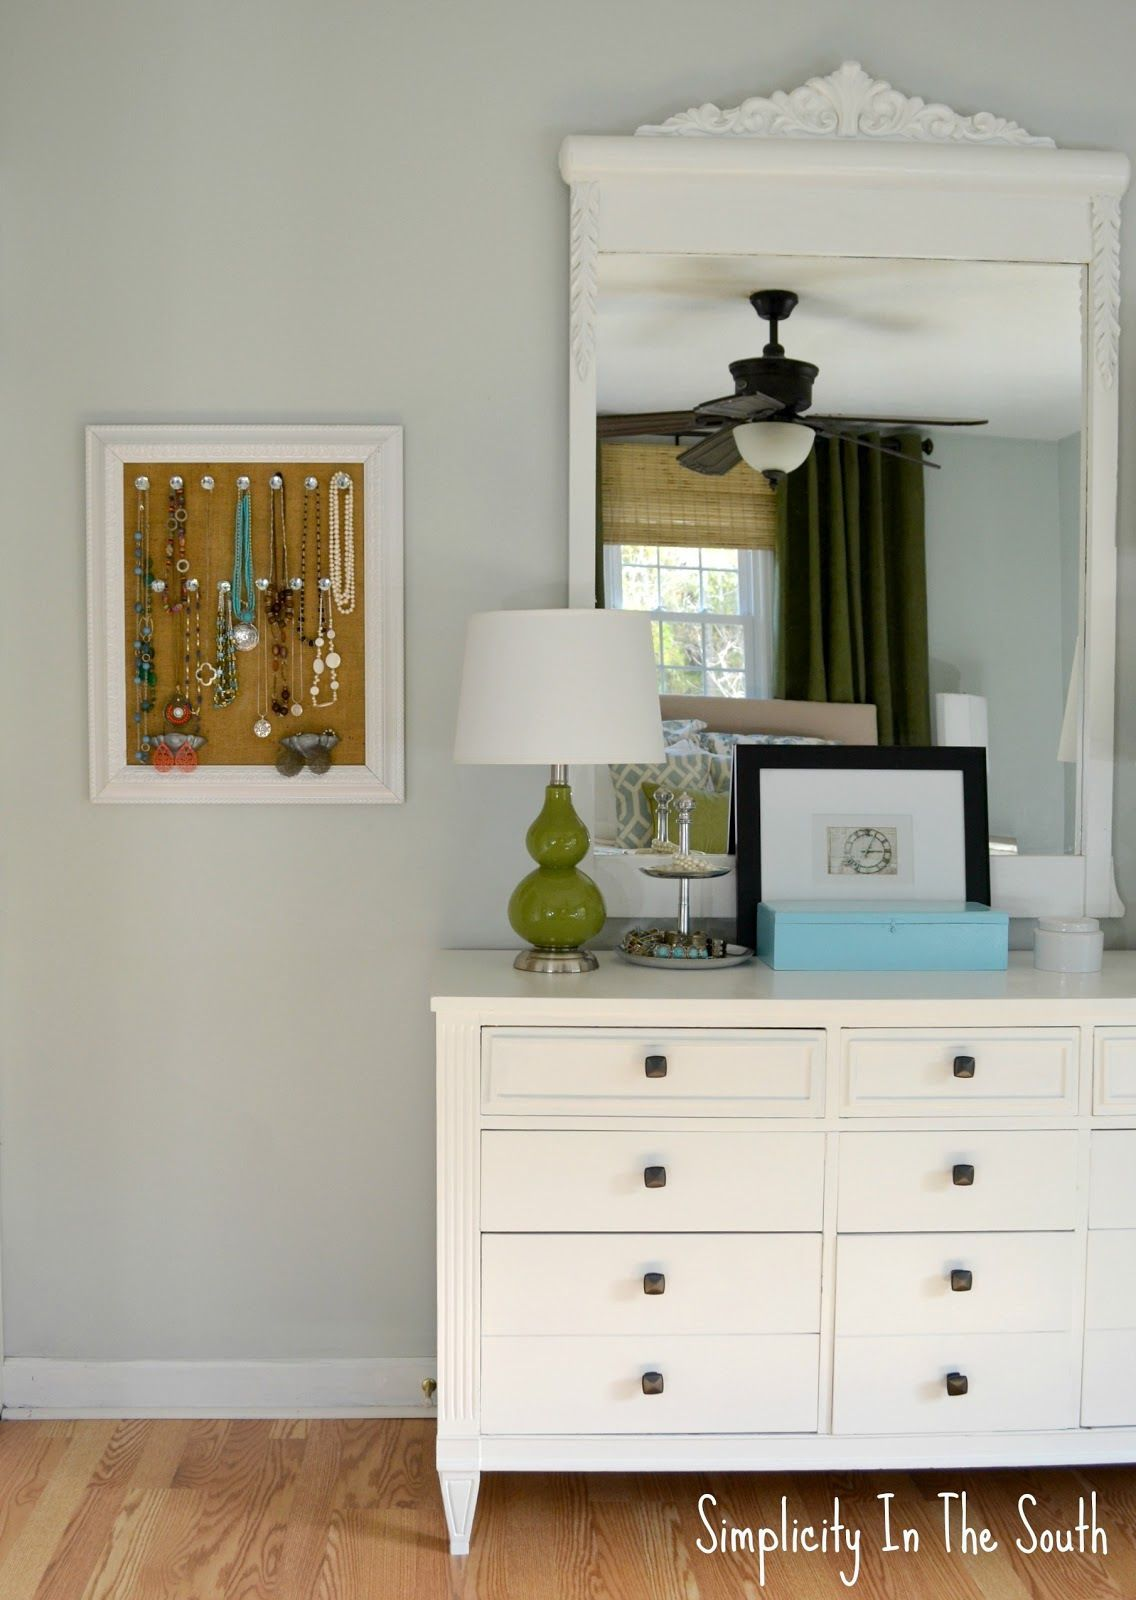 Wall Color Gray Cashmere By Benjamin Moore 2138 60 This Is A Blue With Undertones It Changes The Amount Of Light In Room